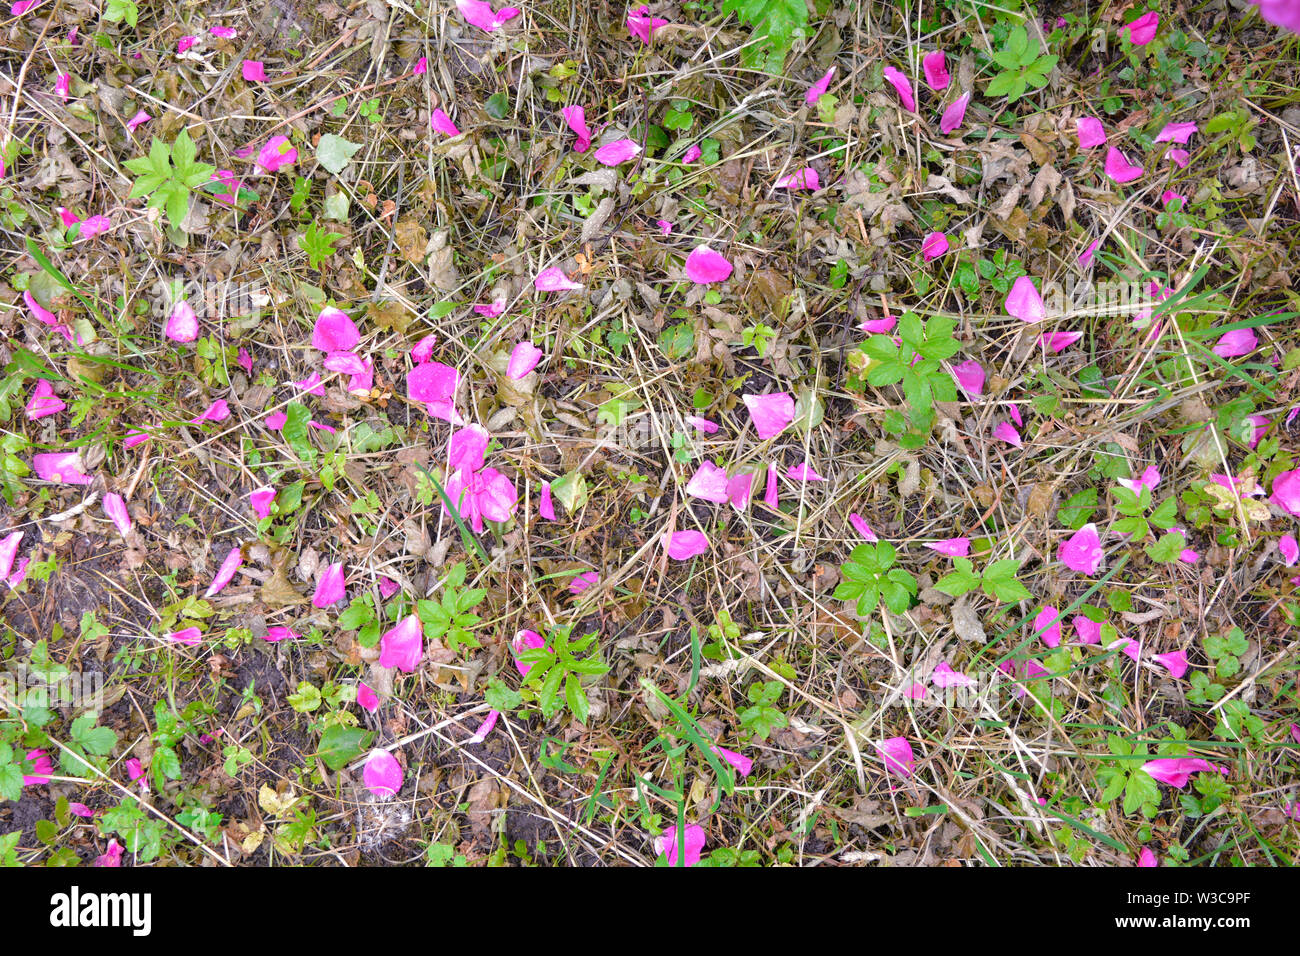 Fallen bright pink rosehip flowers on ground with rare green grass after rain. Wild field and scattered wet petals of briar pink flowers as background Stock Photo